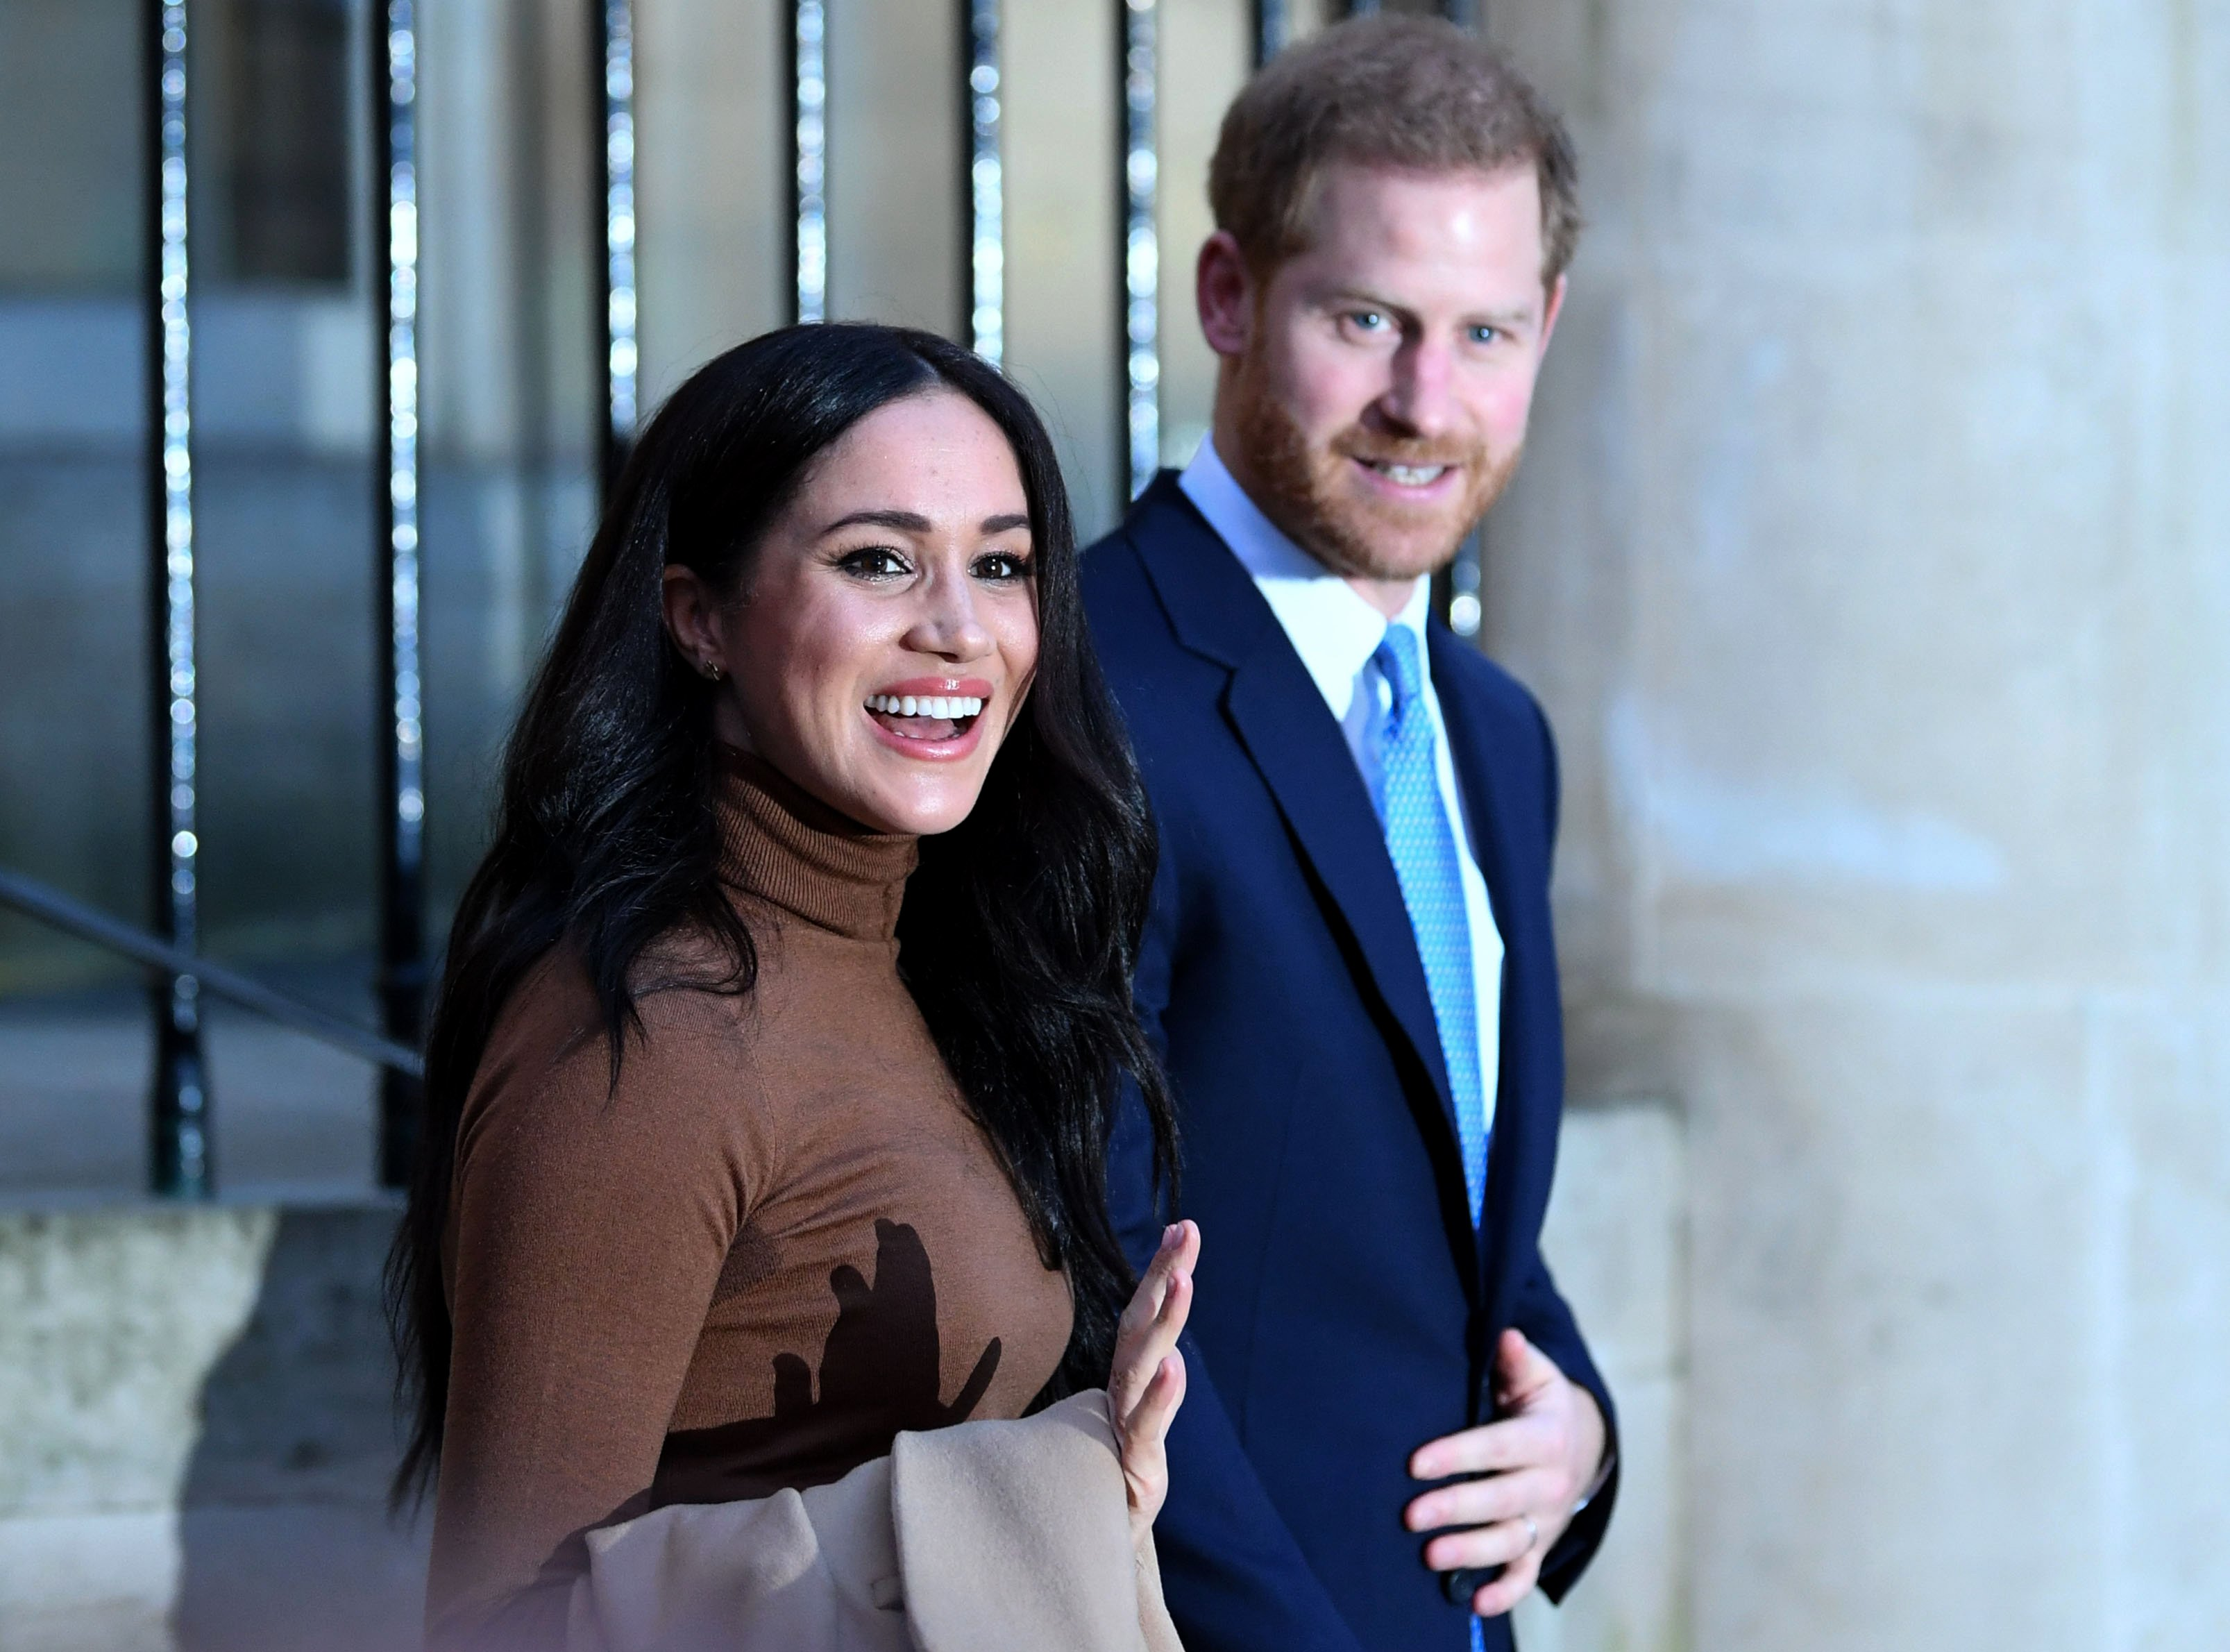 Prince Harry and Meghan Markle visit to Canada House  on January 7, 2020, in London, England. | Source: Getty Images.